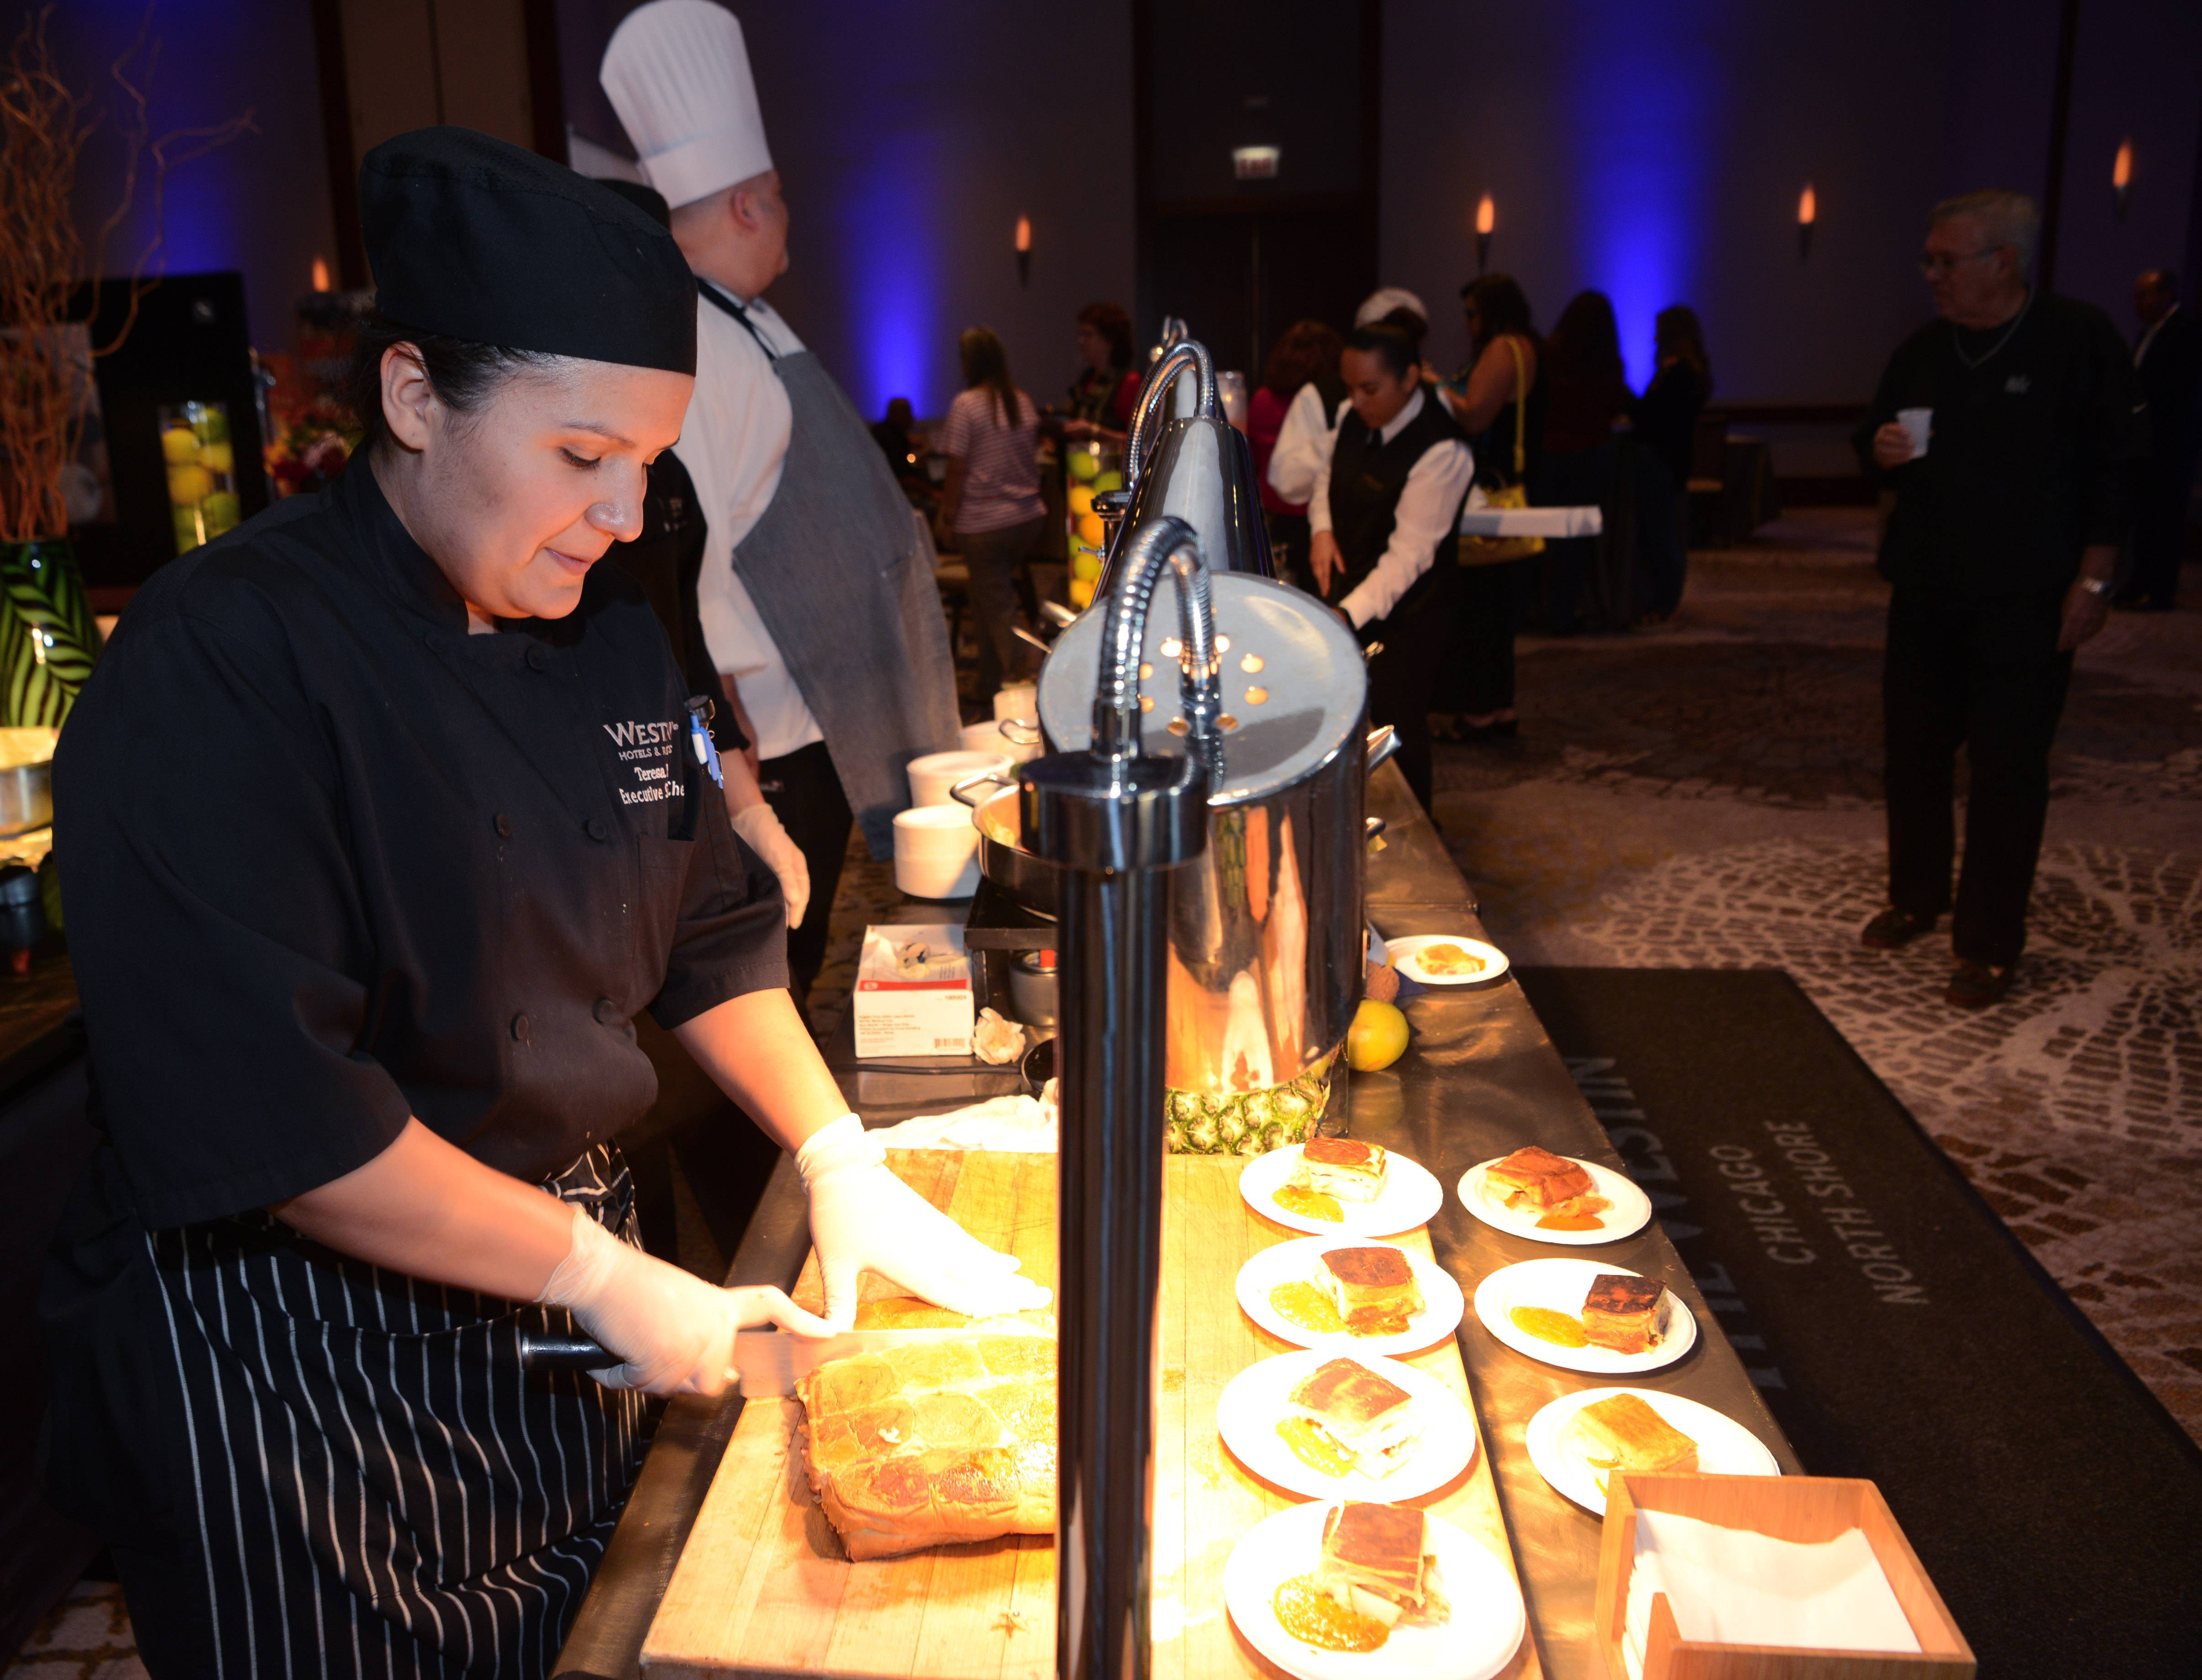 Teresa Ruiz, executive sous chef at Westin Hotels and Resort, cuts media niche sliders during Wheeling's Taste of the Town, held at The Westin Chicago North Shore in Wheeling Thursday.